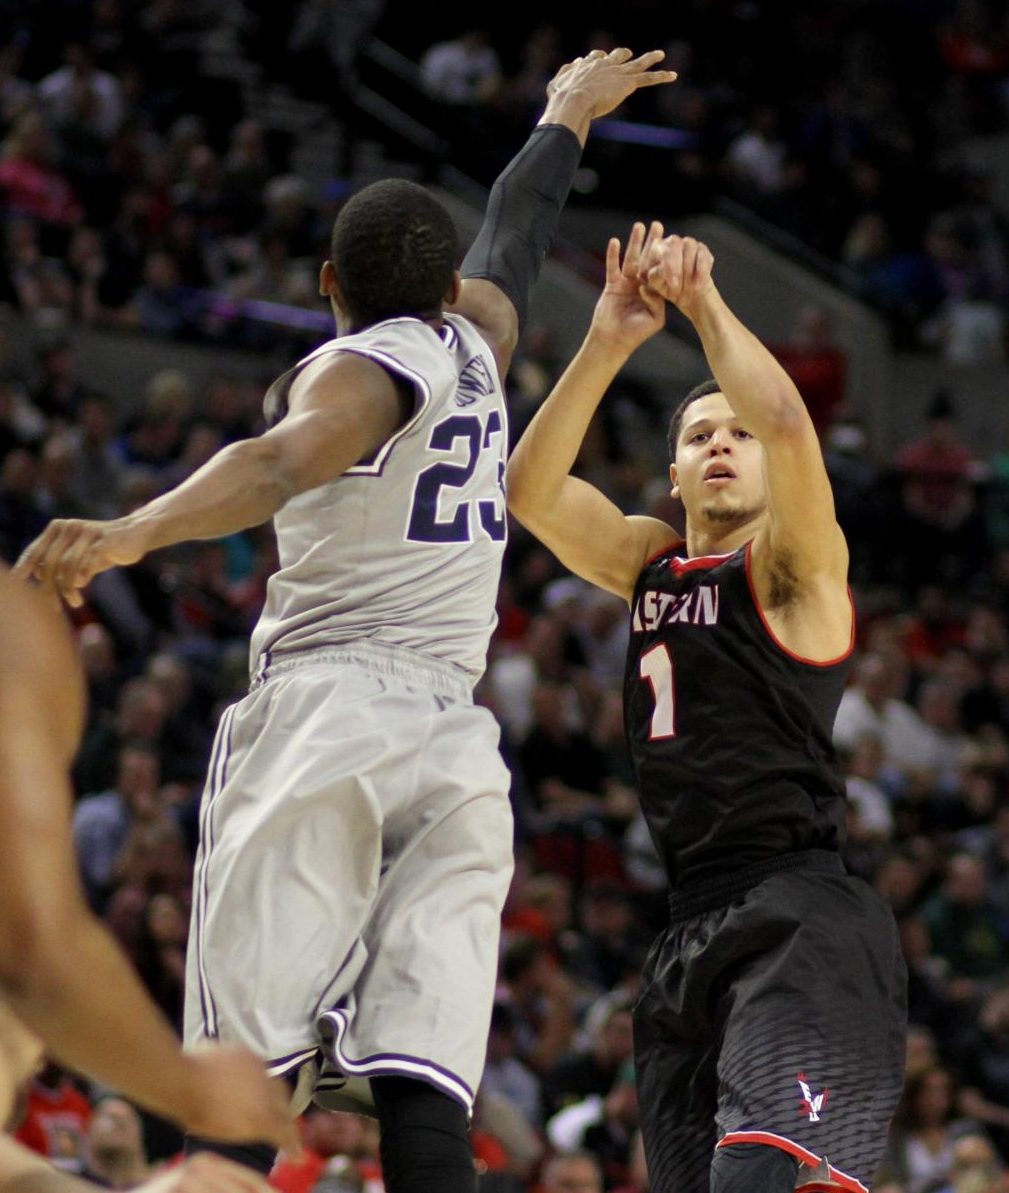 Former EWU guard Tyler Harvey shoots over a Georgetown University defender in the first round of the 2015 NCAA Tournament. In EWU's second-ever appearance in the NCAA Tournament they lost 84-74 to the No. 4 seed Hoyas.